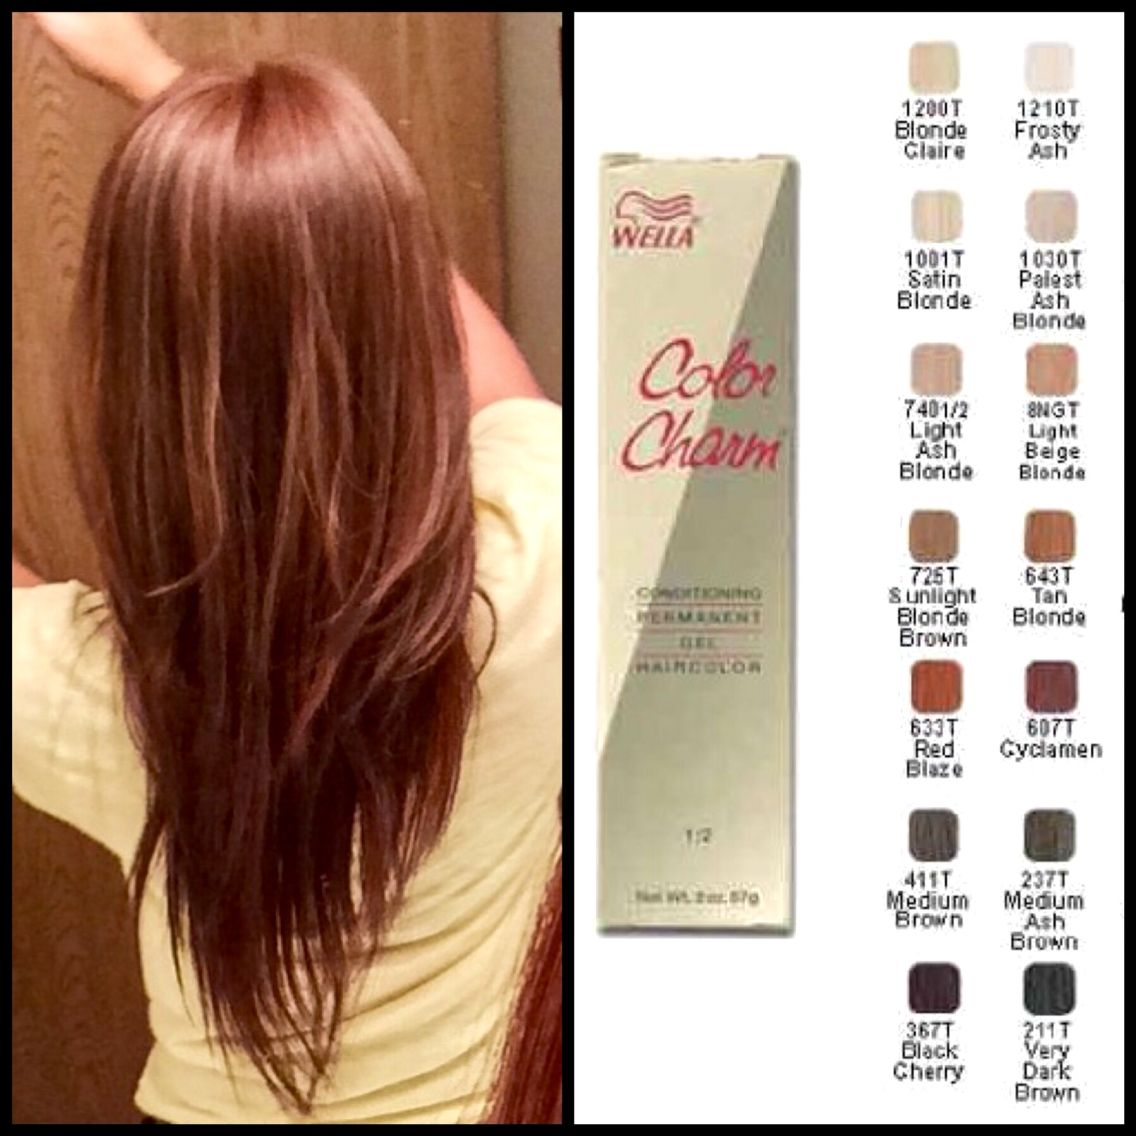 My Favorite Affordable Hair Dye Brand Wella Color Charm Sally Beauty Supply Affordable Hair Dye Boxed Hair Color Beauty Supplies Hair